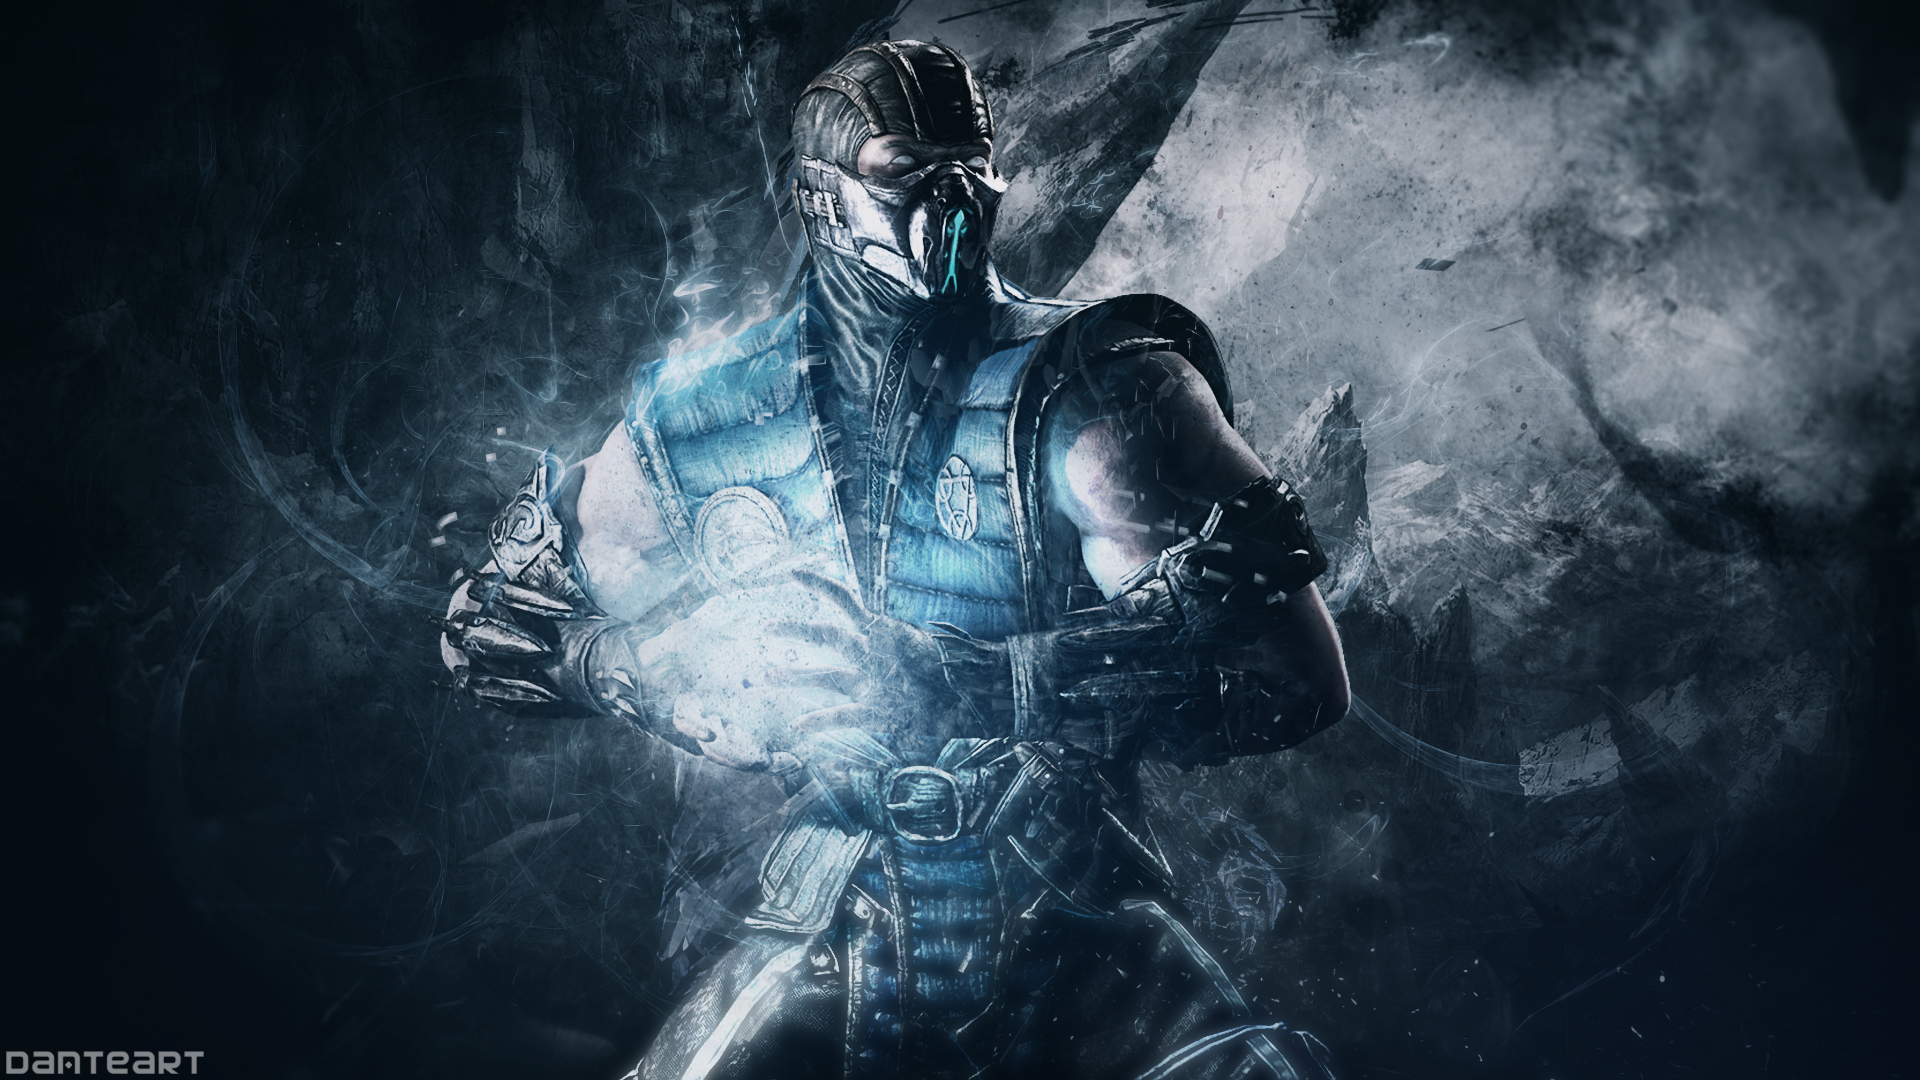 Mortal Kombat X Sub Zero Wallpaper By Danteartwallpapers On Deviantart